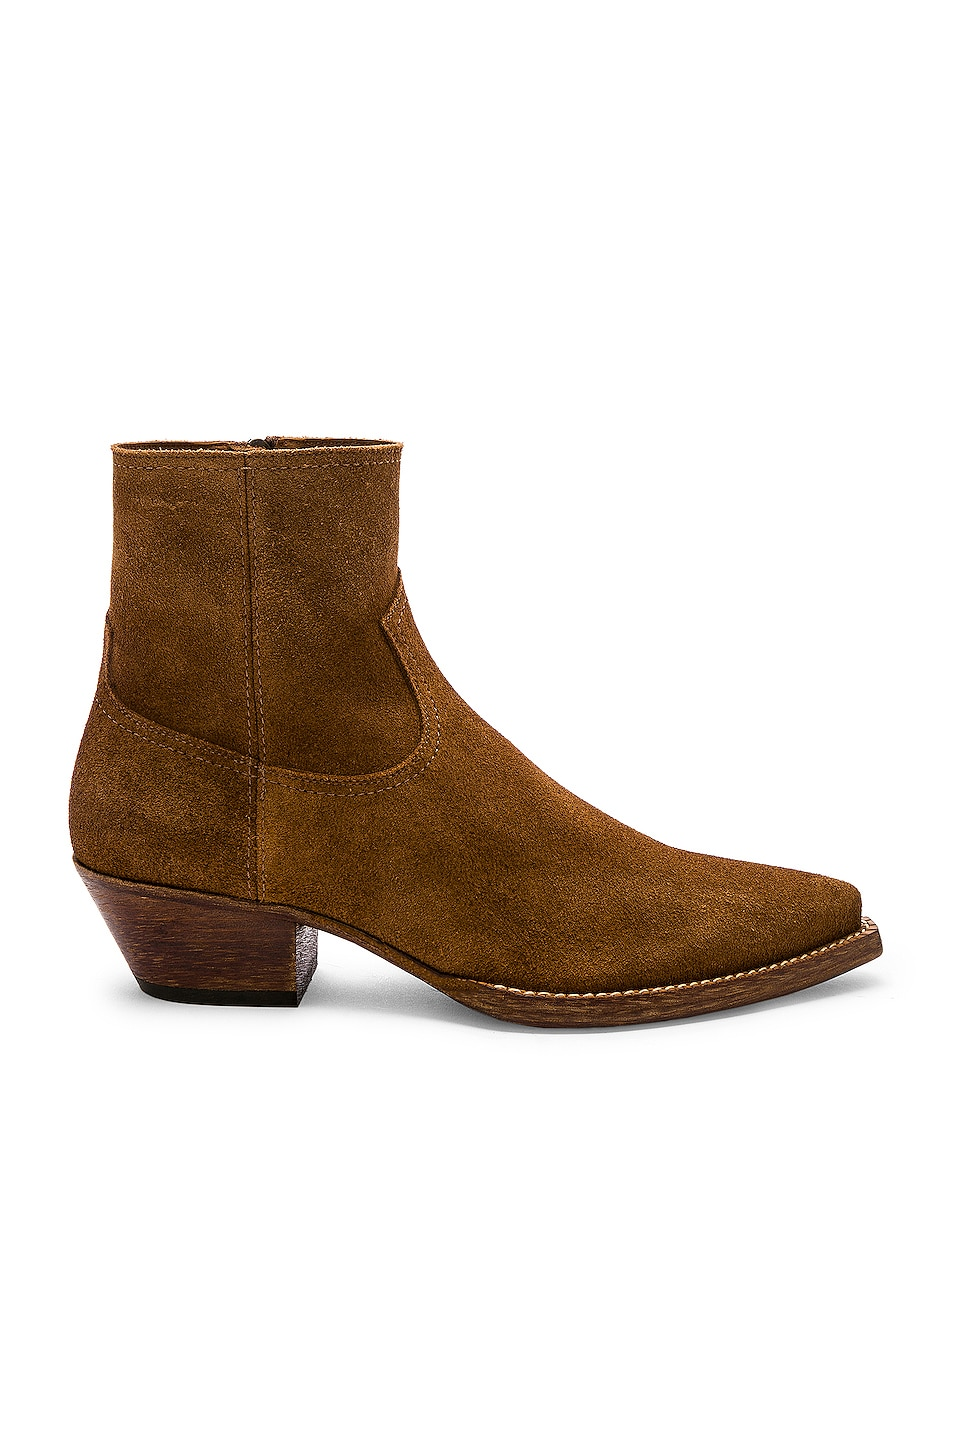 Image 1 of Saint Laurent Lukas 40 Zip Boot in Hazelnut